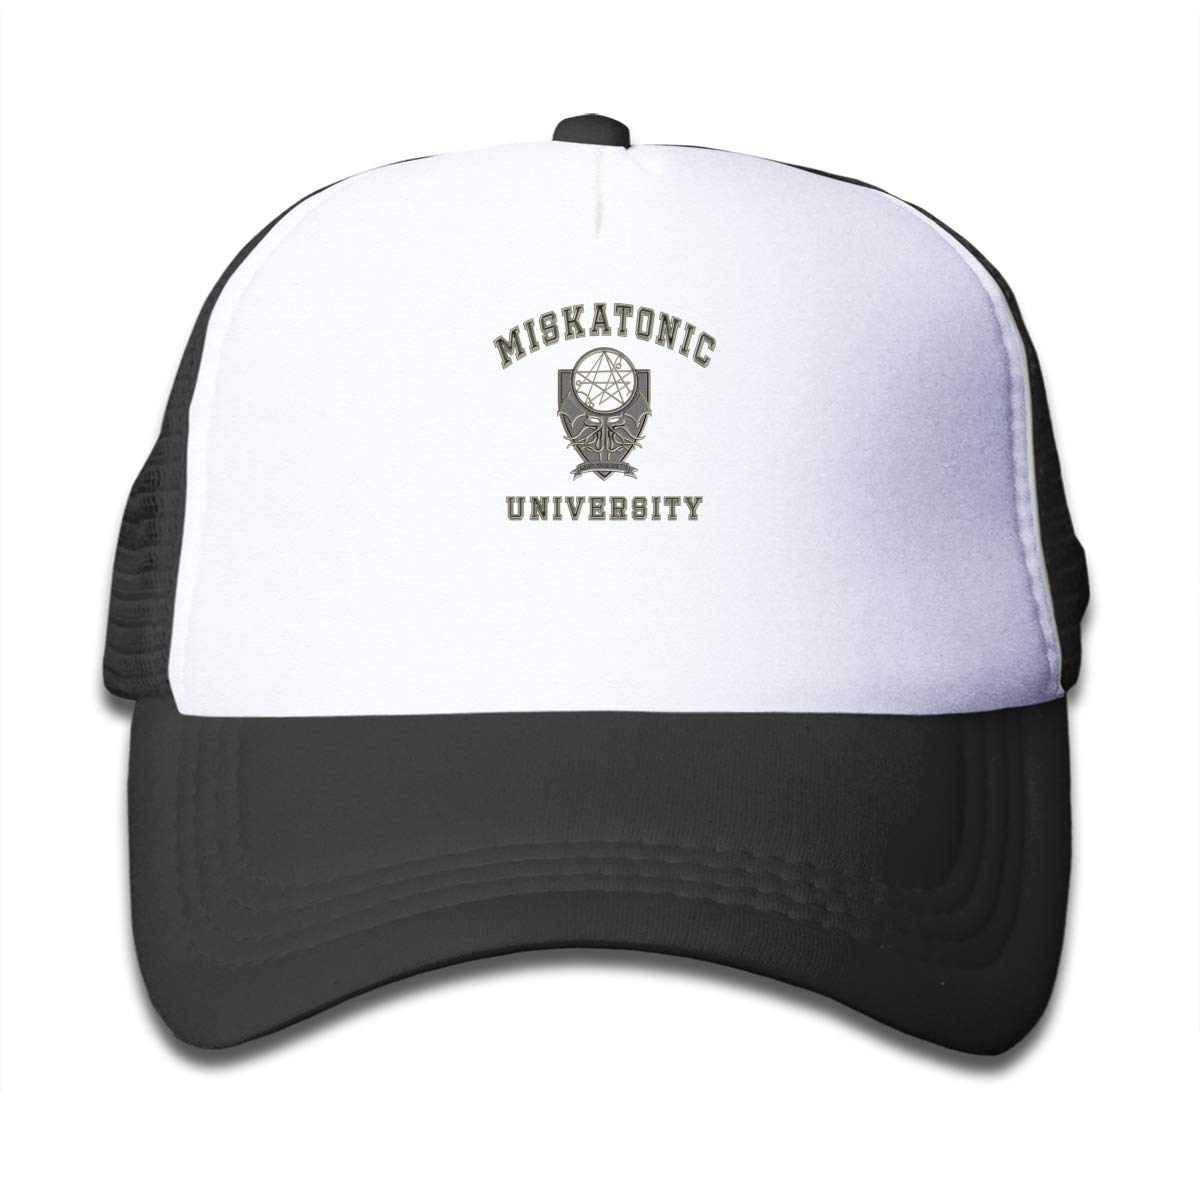 ETXHU Black Baseball Cap-Miskatonic University Boys Caps School Snapback Trucker Hats